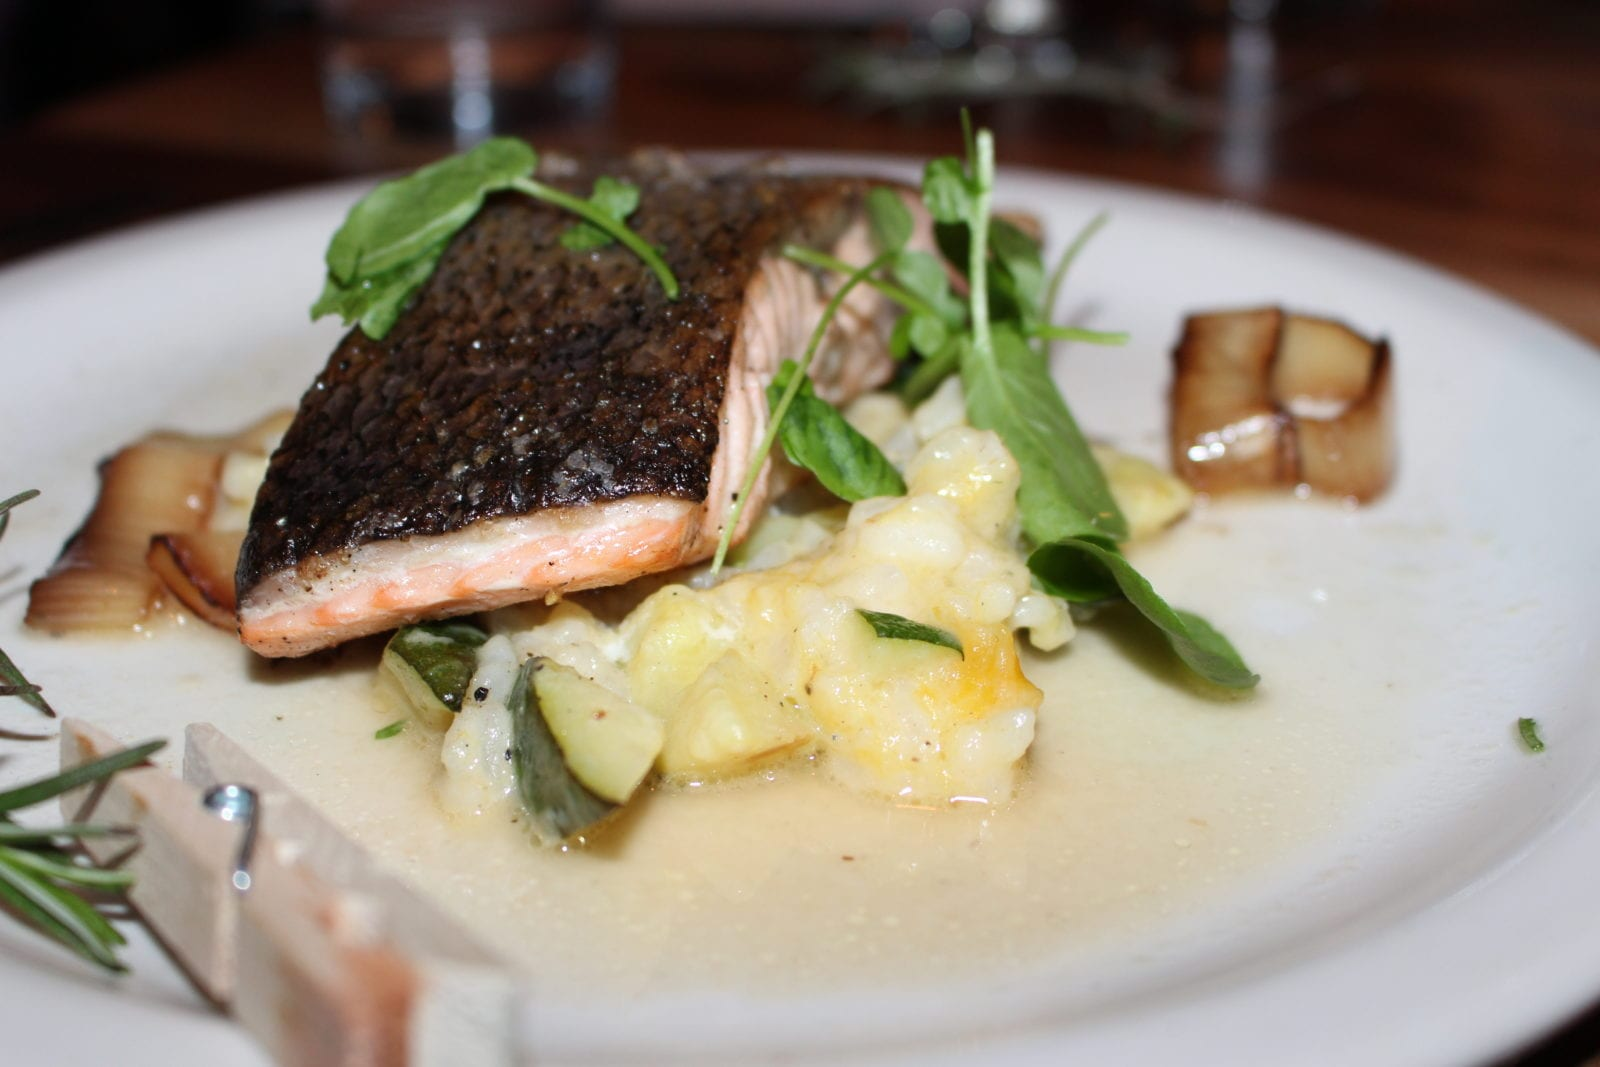 Adaleta is sharing her salmon entree from Commoner & Co located in Tucson, Arizona. The seared salmon is placed on top of winter squash risotto, dill, tarragon nage, and charred leek.